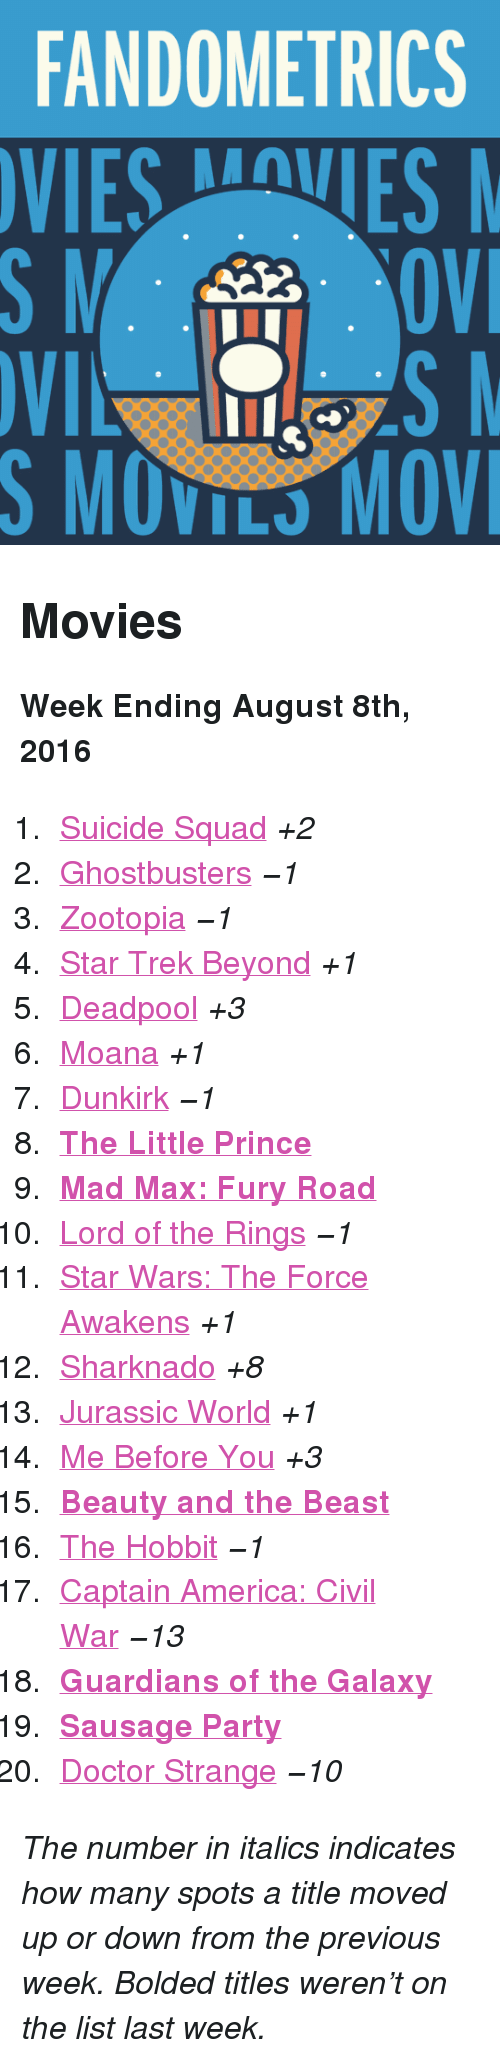 "moana: FANDOMETRICS  VIESVES  S MOVILS MOV <h2>Movies</h2><p><b>Week Ending August 8th, 2016</b></p><ol><li><a href=""http://www.tumblr.com/search/suicide%20squad"">Suicide Squad</a> <i>+2</i></li>  <li><a href=""http://www.tumblr.com/search/ghostbusters"">Ghostbusters</a> <i>−1</i></li>  <li><a href=""http://www.tumblr.com/search/zootopia"">Zootopia</a> <i>−1</i></li>  <li><a href=""http://www.tumblr.com/search/star%20trek%20beyond"">Star Trek Beyond</a> <i>+1</i></li>  <li><a href=""http://www.tumblr.com/search/deadpool"">Deadpool</a> <i>+3</i></li>  <li><a href=""http://www.tumblr.com/search/moana"">Moana</a> <i>+1</i></li>  <li><a href=""http://www.tumblr.com/search/dunkirk"">Dunkirk</a> <i>−1</i></li>  <li><a href=""http://www.tumblr.com/search/the%20little%20prince""><b>The Little Prince</b></a></li>  <li><a href=""http://www.tumblr.com/search/mad%20max""><b>Mad Max: Fury Road</b></a></li>  <li><a href=""http://www.tumblr.com/search/lotr"">Lord of the Rings</a> <i>−1</i></li>  <li><a href=""http://www.tumblr.com/search/the%20force%20awakens"">Star Wars: The Force Awakens</a> <i>+1</i></li>  <li><a href=""http://www.tumblr.com/search/sharknado"">Sharknado</a> <i>+8</i></li>  <li><a href=""http://www.tumblr.com/search/jurassic%20world"">Jurassic World</a> <i>+1</i></li>  <li><a href=""http://www.tumblr.com/search/me%20before%20you"">Me Before You</a> <i>+3</i></li>  <li><a href=""http://www.tumblr.com/search/beauty%20and%20the%20beast""><b>Beauty and the Beast</b></a></li>  <li><a href=""http://www.tumblr.com/search/the%20hobbit"">The Hobbit</a> <i>−1</i></li>  <li><a href=""http://www.tumblr.com/search/captain%20america%20civil%20war"">Captain America: Civil War</a> <i>−13</i></li>  <li><b><a href=""http://www.tumblr.com/search/guardians%20of%20the%20galaxy"">Guardians of the Galaxy</a> </b></li>  <li><a href=""http://www.tumblr.com/search/sausage%20party""><b>Sausage Party</b></a></li>  <li><a href=""http://www.tumblr.com/search/doctor%20strange"">Doctor Strange</a> <i>−10</i></li></ol><p><i>The number in italics indicates how many spots a title moved up or down from the previous week. Bolded titles weren't on the list last week.</i></p>"